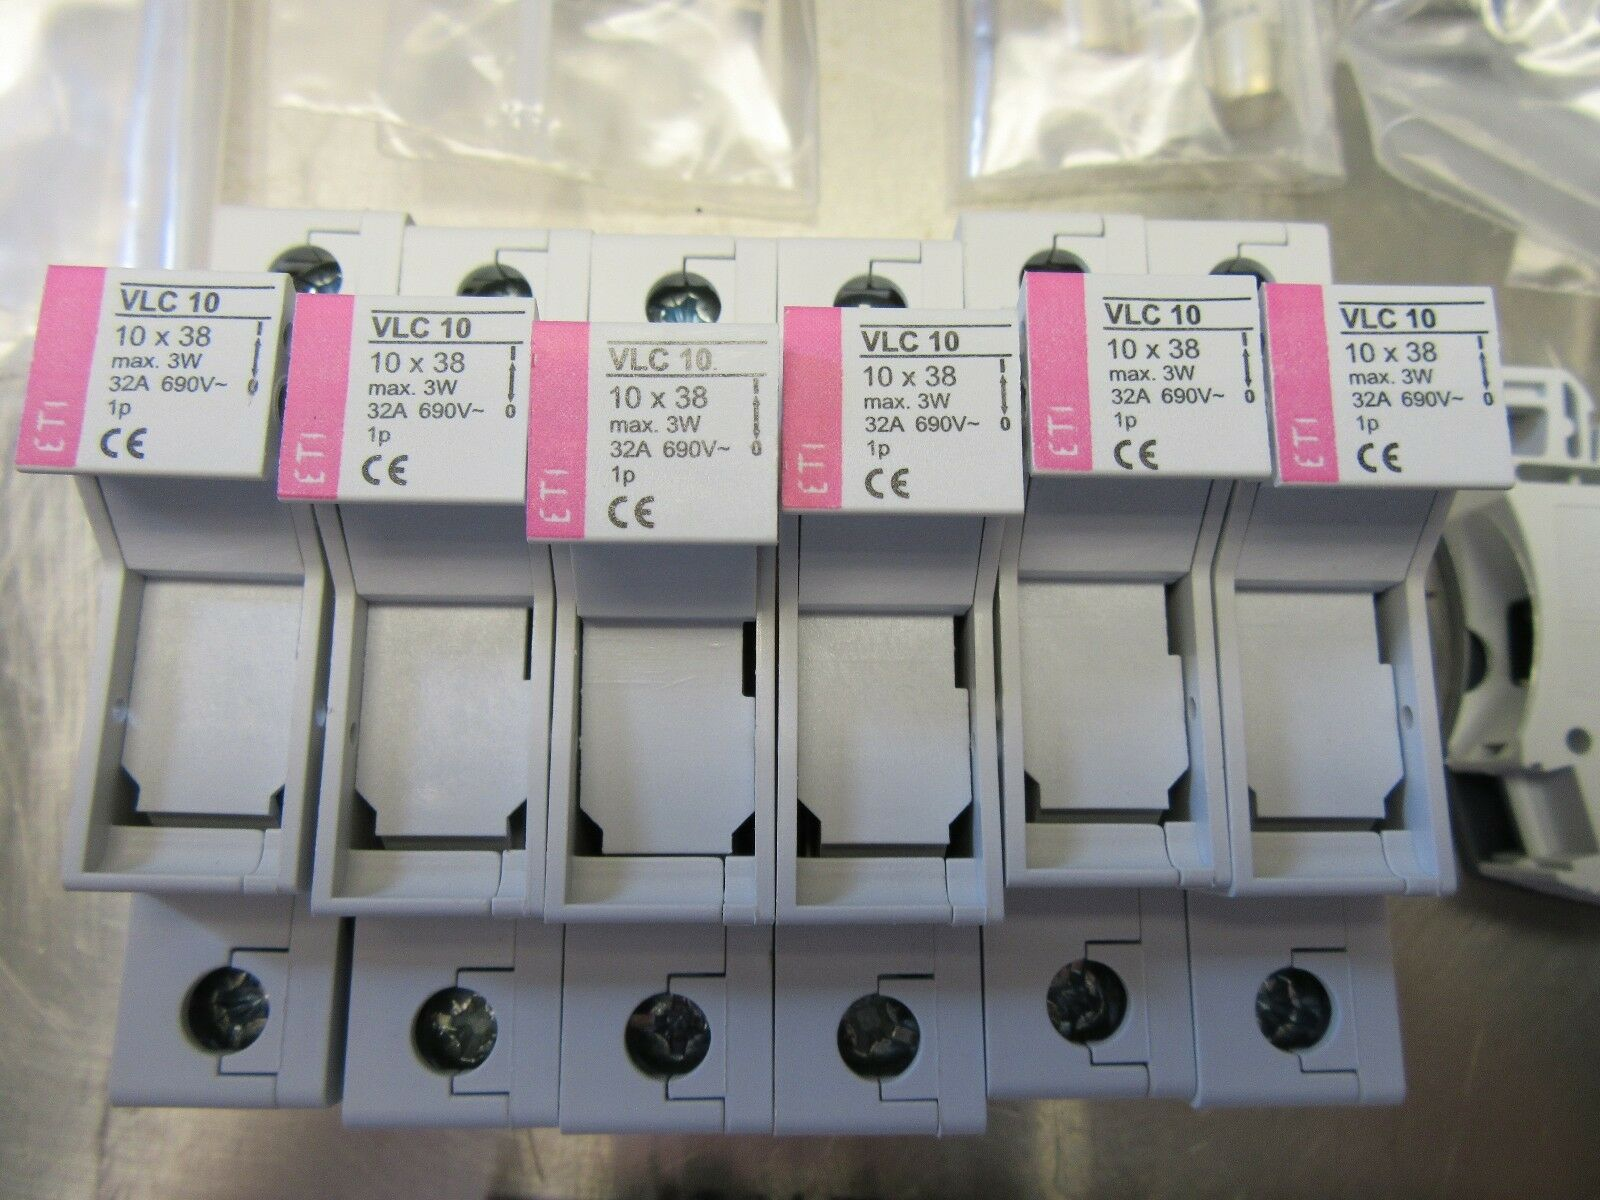 Lot of 6 ETI VLC10x38 Fuse Links PSB1020508 with Fuses 16A 32A 6A